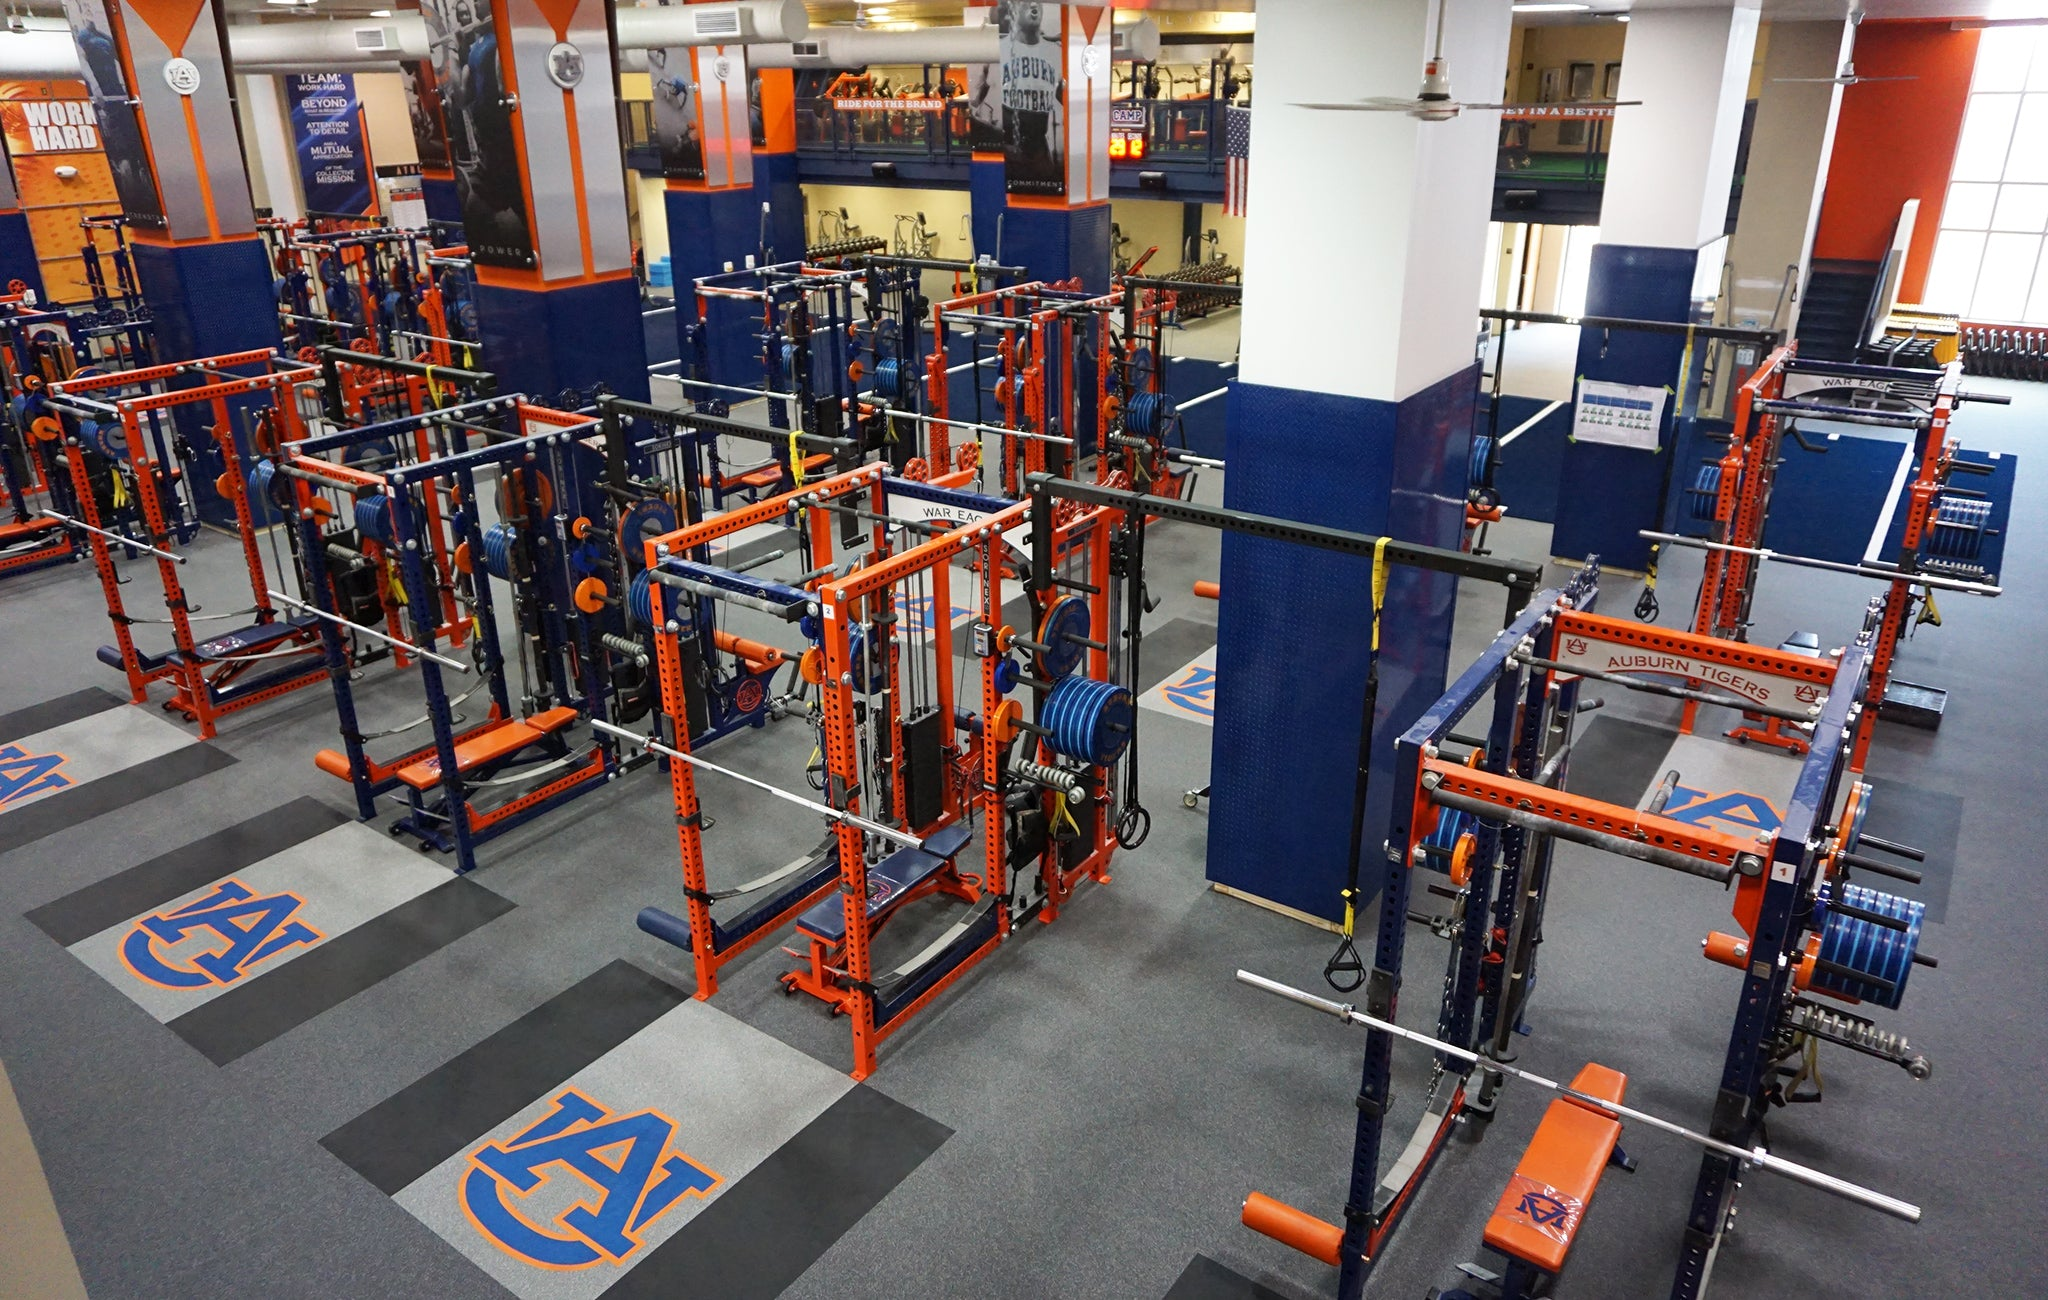 Auburn Weight Room